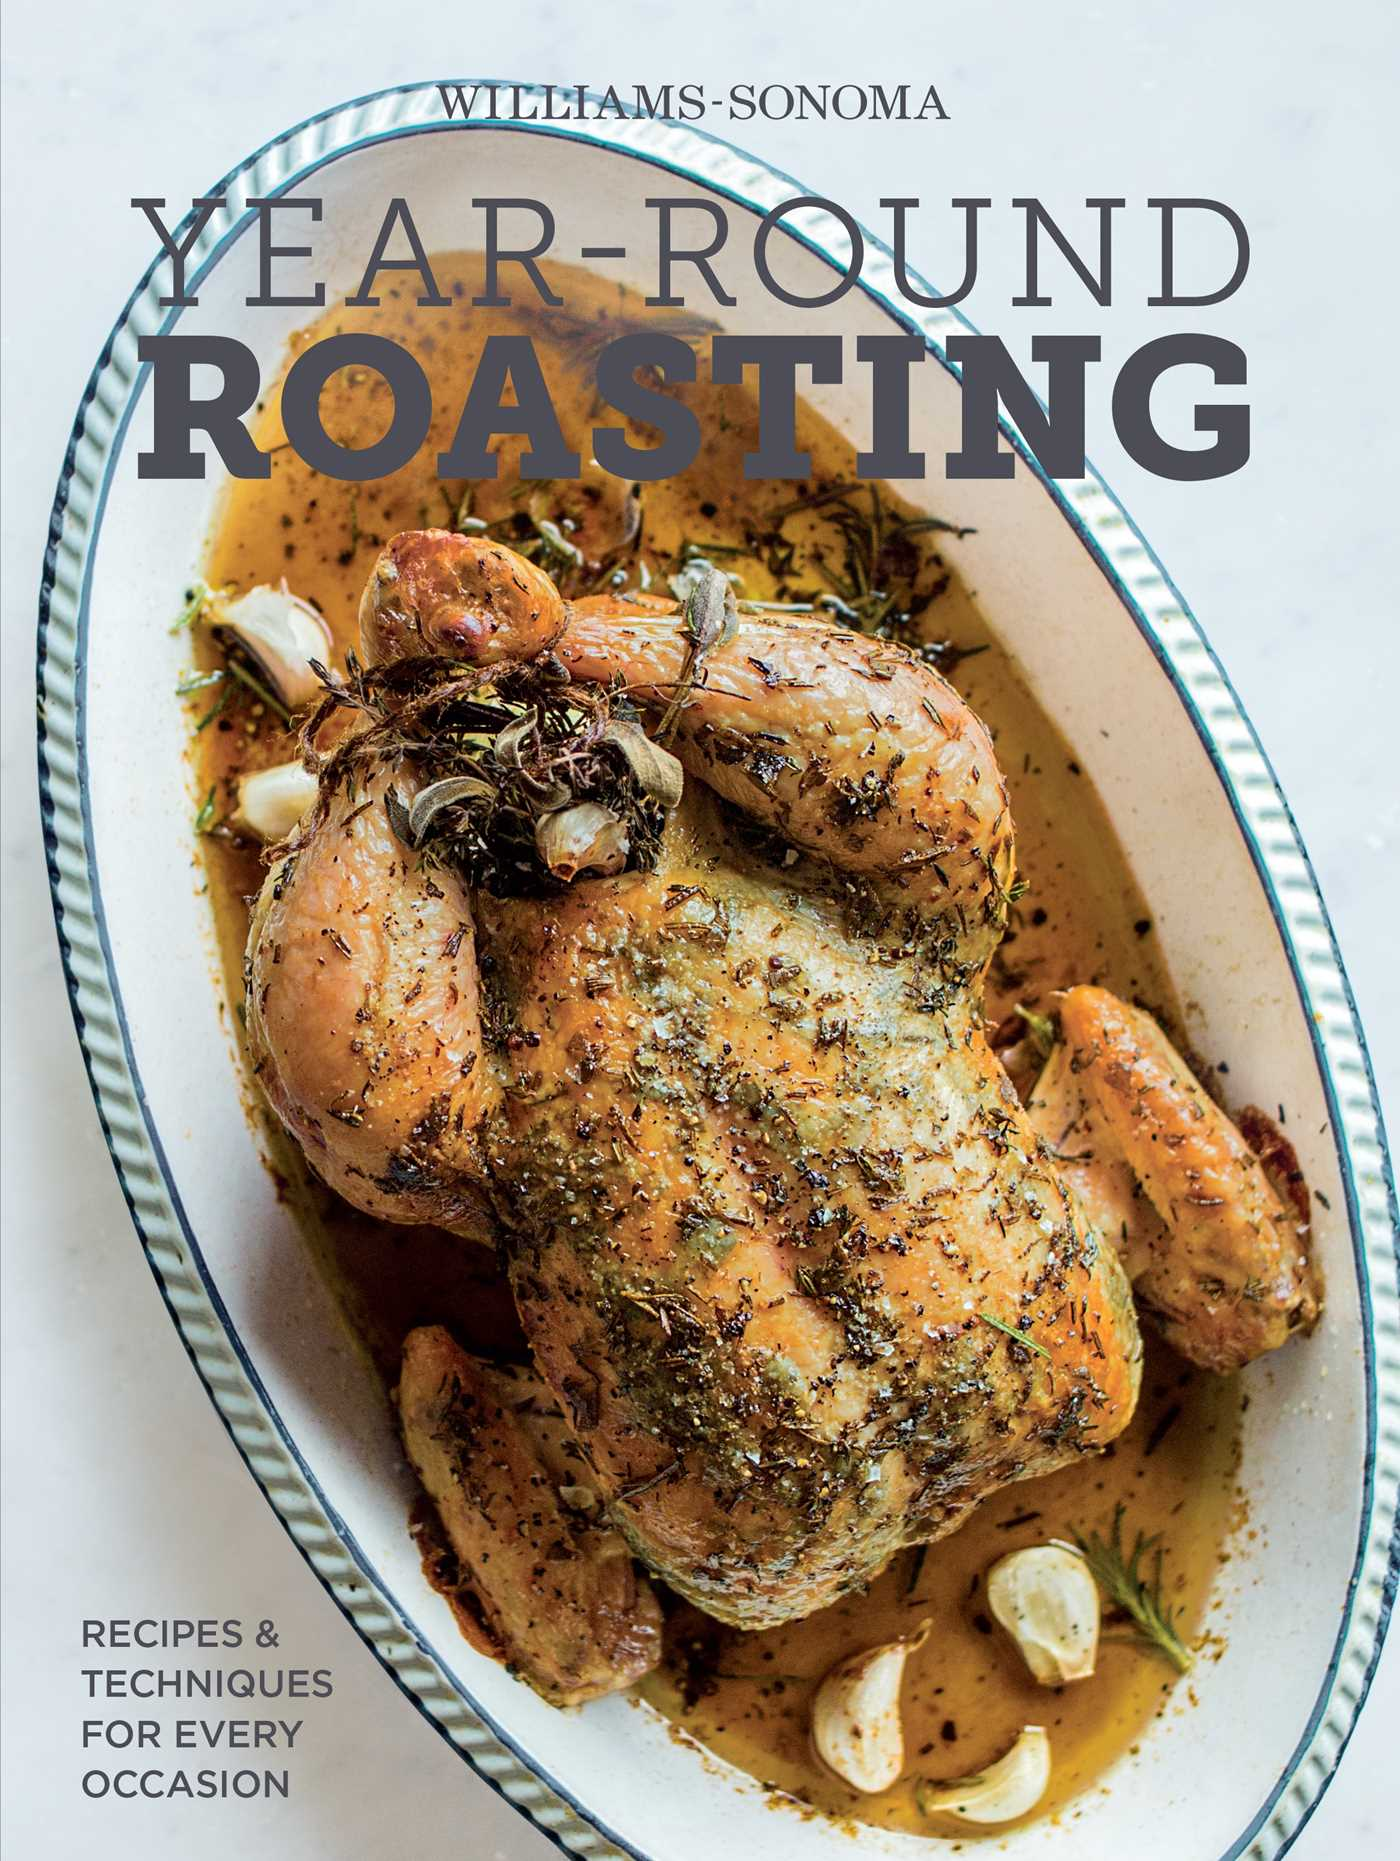 Year-round-roasting-(williams-sonoma)-9781616288273_hr